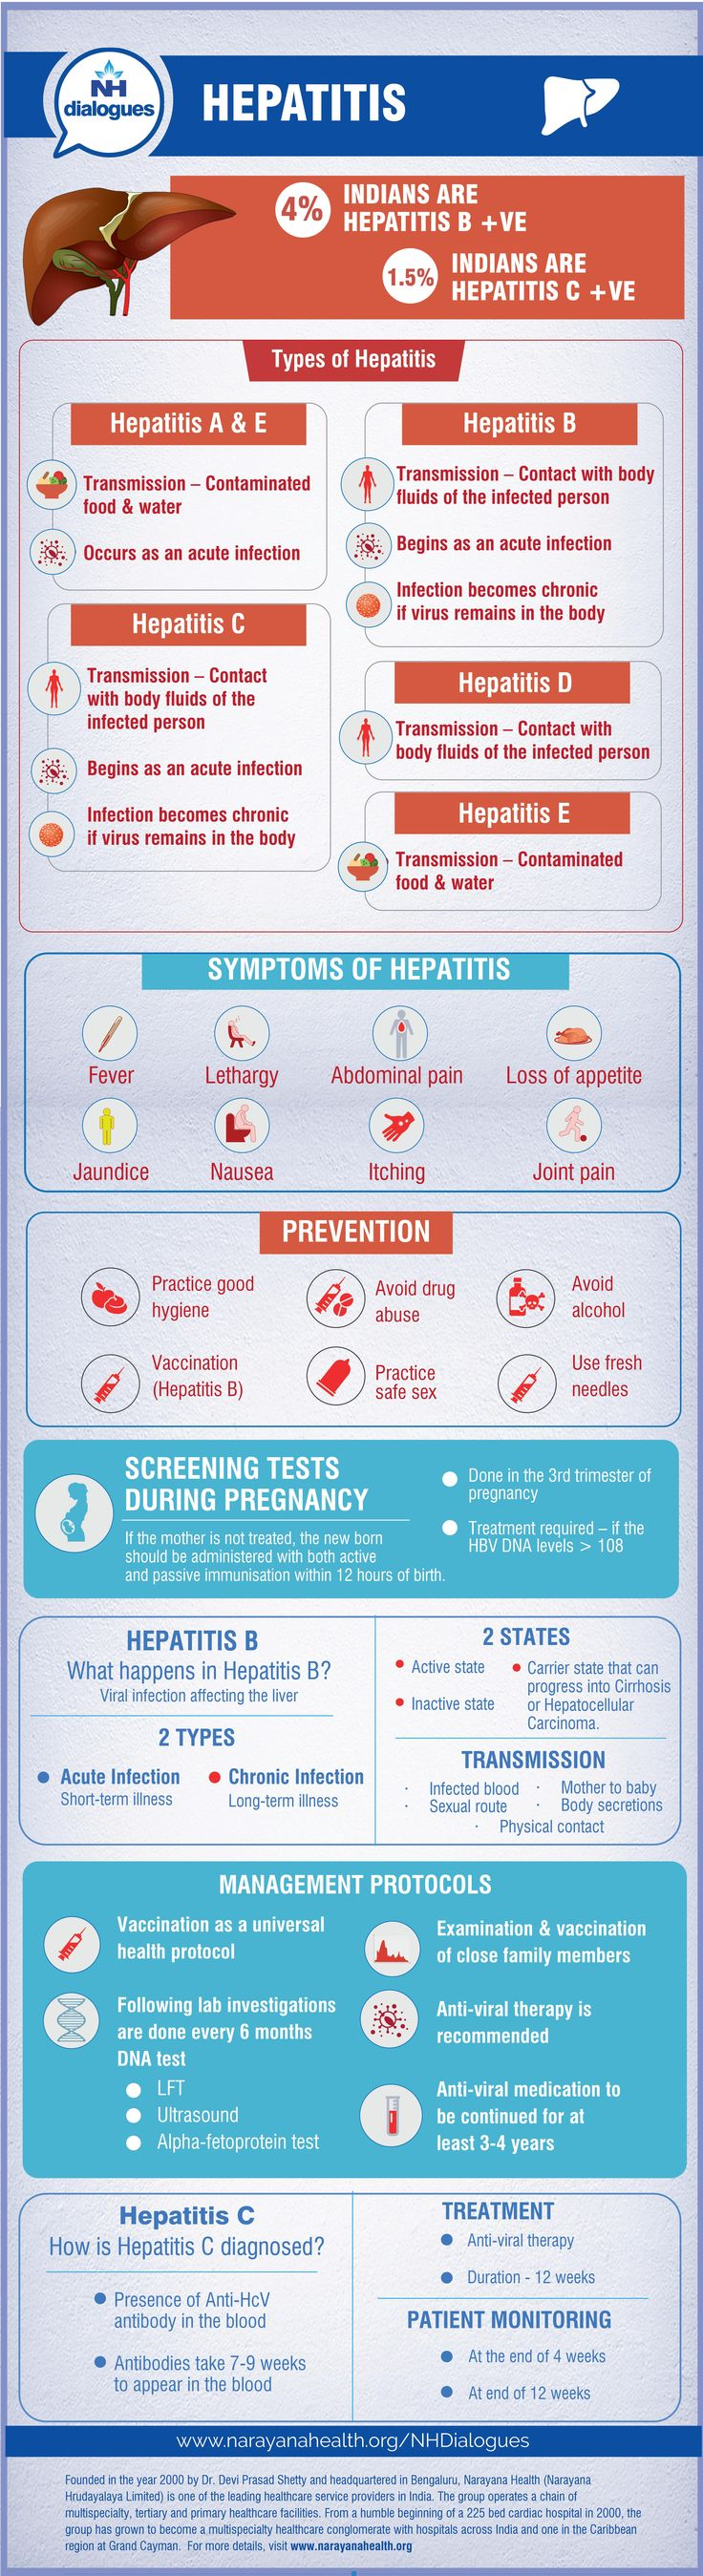 Hepatitis is an inflammatory condition of the liver. It's usually caused by viral infections, but there are several other likely causes of hepatitis like alcohol, drugs, etc. Subject to the cause, hepatitis can manifest as acute or chronic disease. The infographic helps you in better understading the causes, symptoms and cure for hepatitis.cheryl